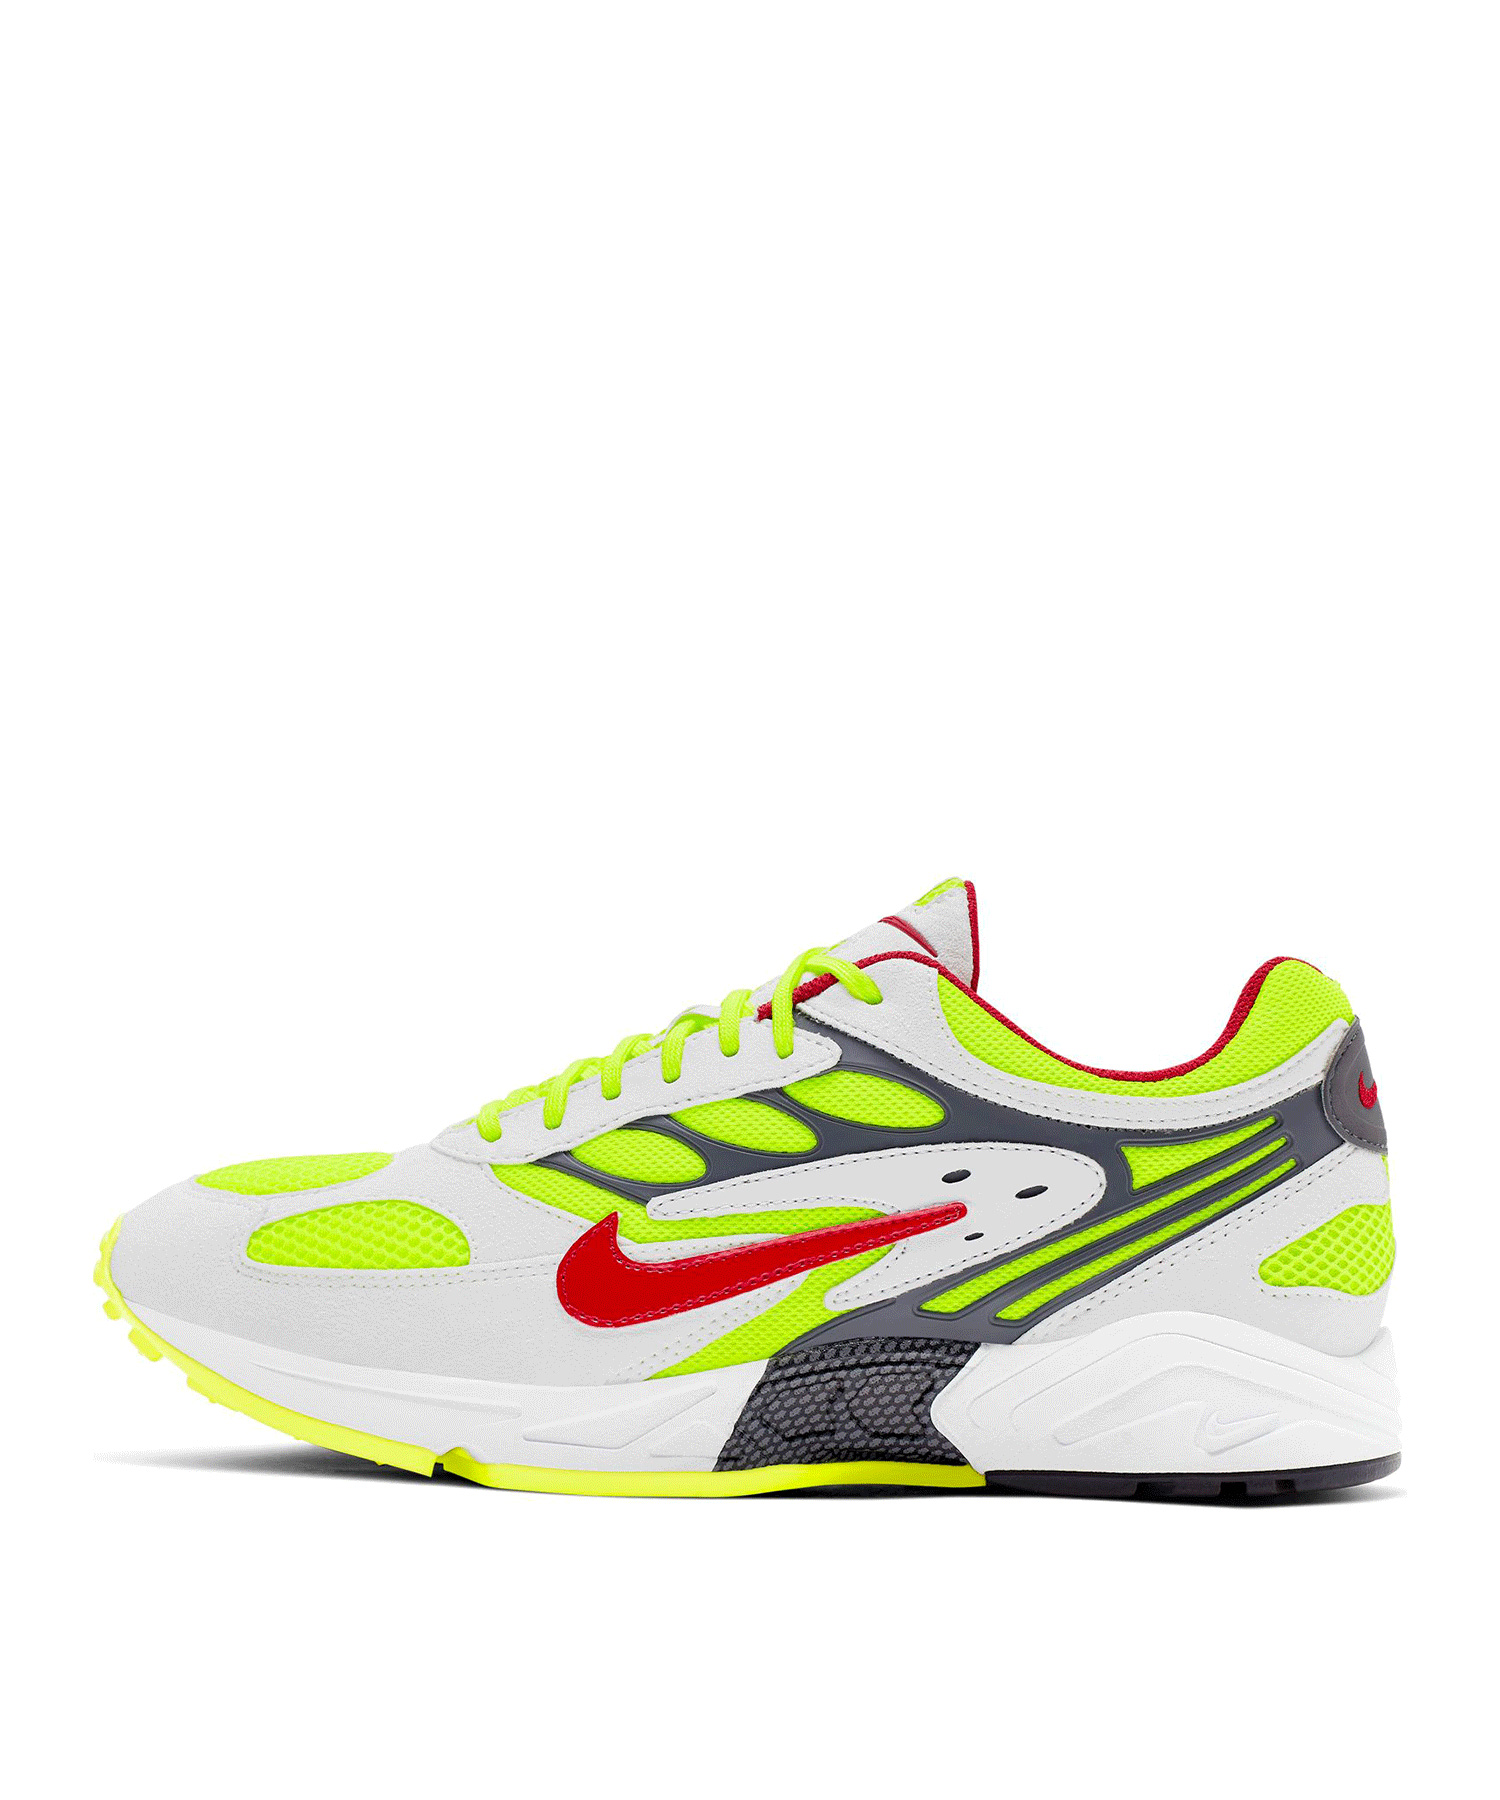 "NIKE / ""AIR GHOST RACER"" スニーカー"